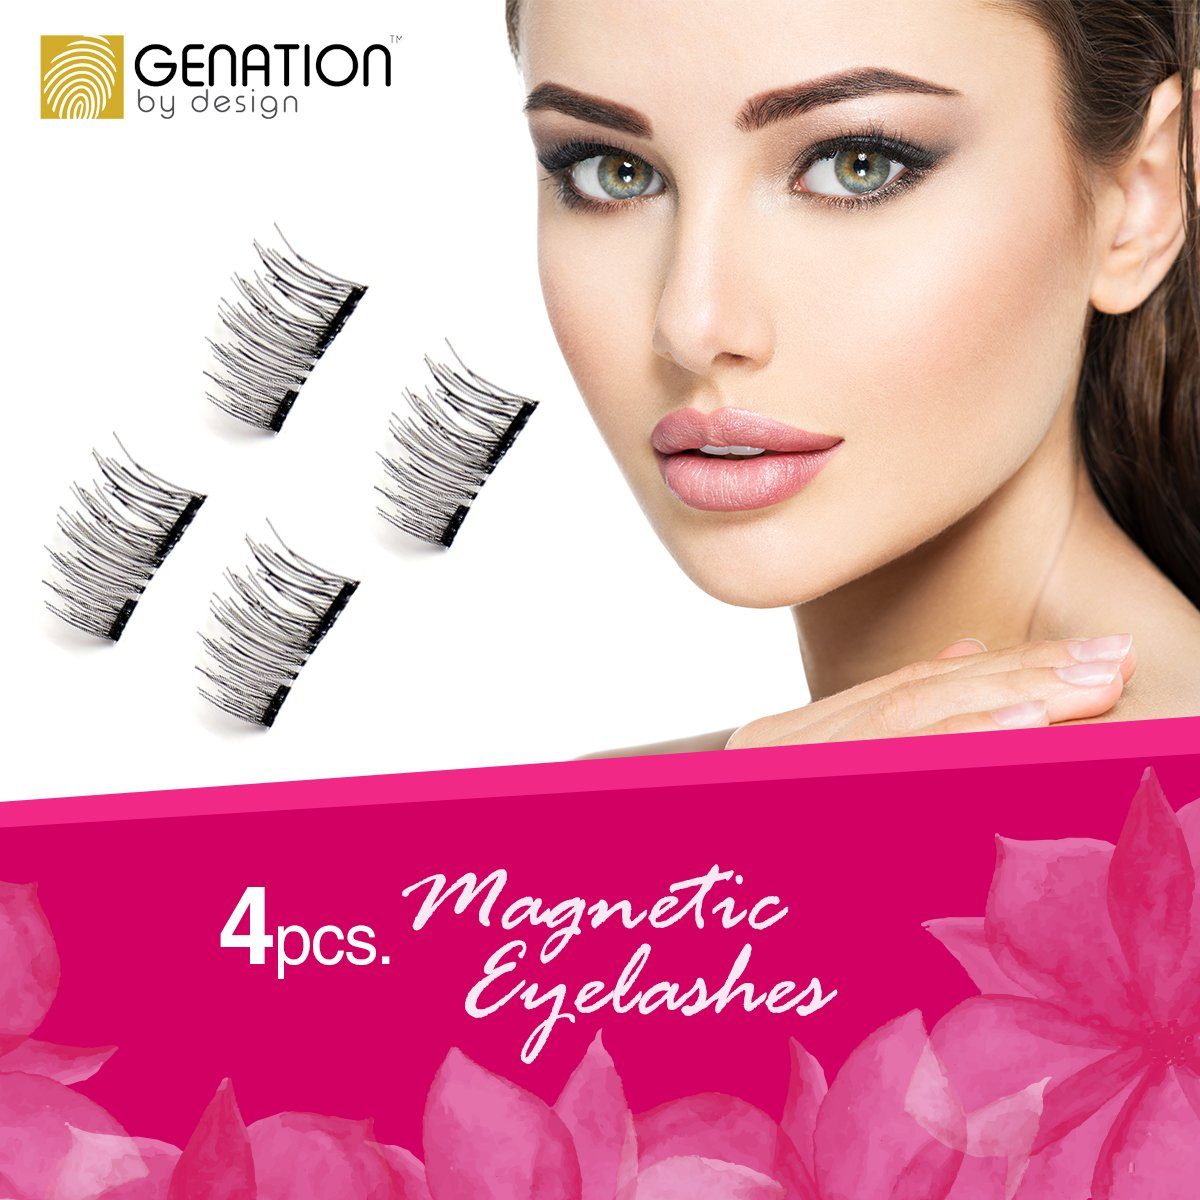 fb5e20376fe Genation Dual Magnetic False Eyelashes - 3D Reusable Best Fake Lashes –  Natural looking Lash Extensions - Handmade From Synthetic Flexible Fibers -  Dramatic ...